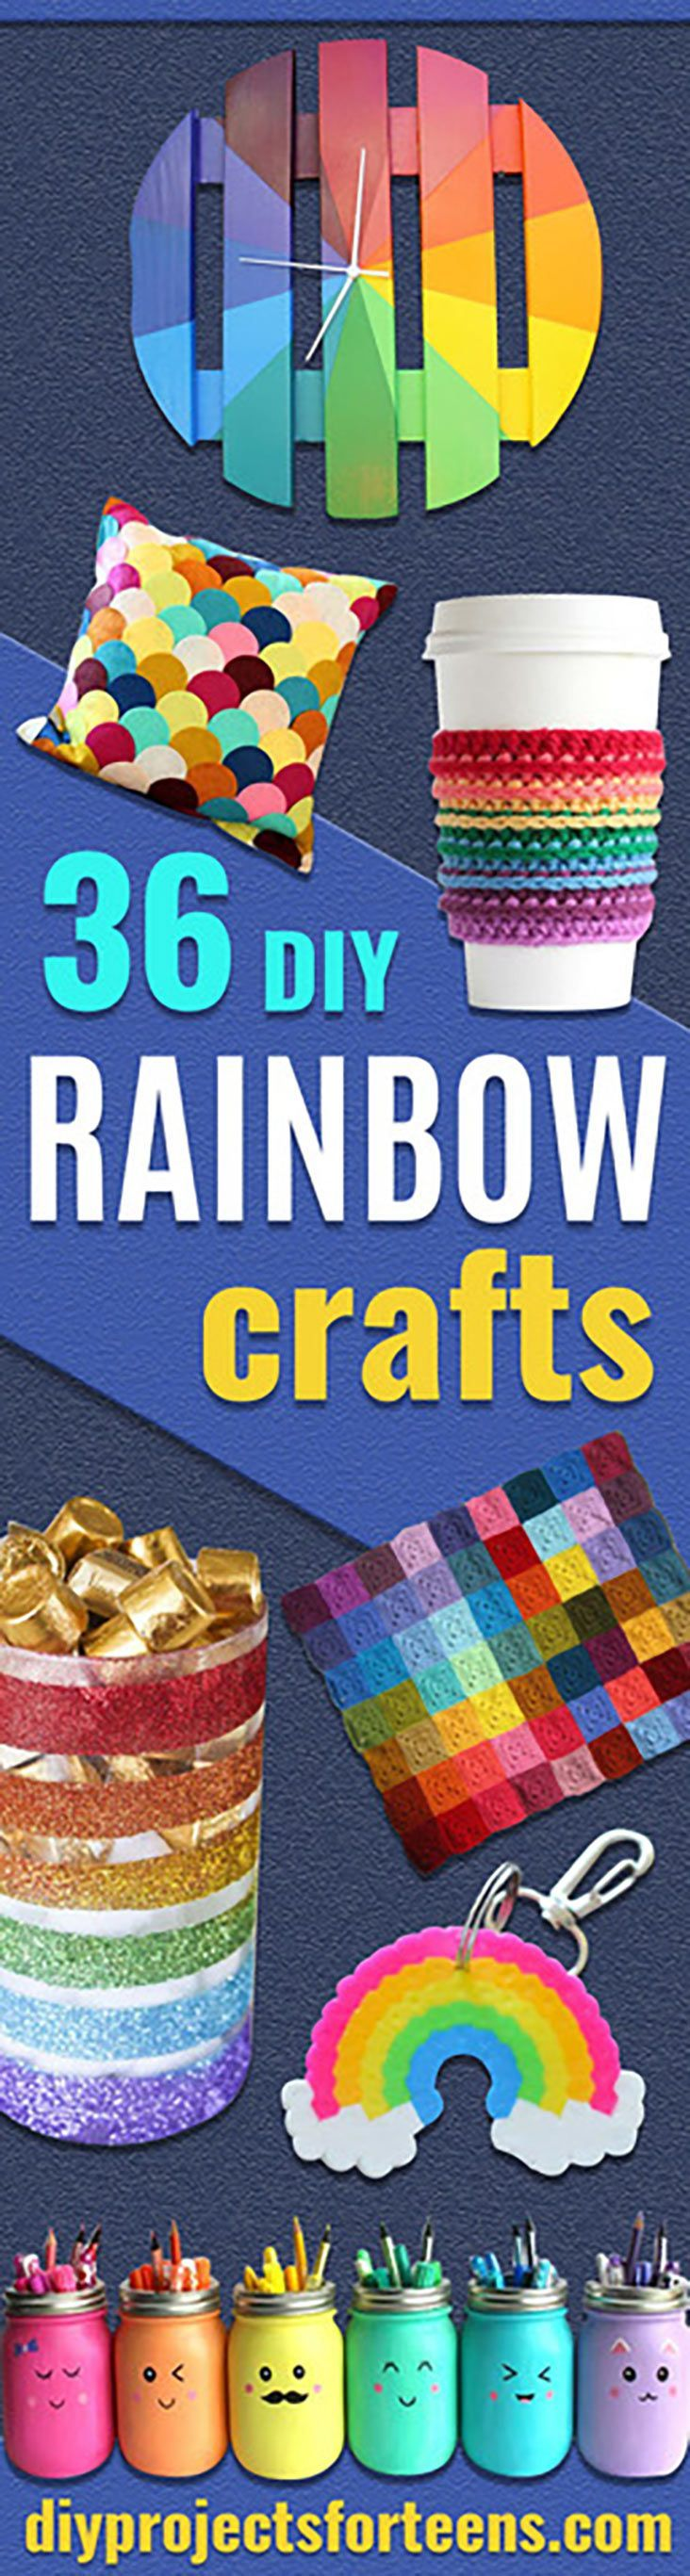 Best DIY Rainbow Crafts Ideas - Fun DIY Projects With Rainbows Make Cool Room and Wall Decor, Party and Gift Ideas, Clothes, Jewelry and Hair Accessories - Awesome Ideas and Step by Step Tutorials for Teens and Adults, Girls and Tweens http://diyprojectsforteens.com/diy-projects-with-rainbows